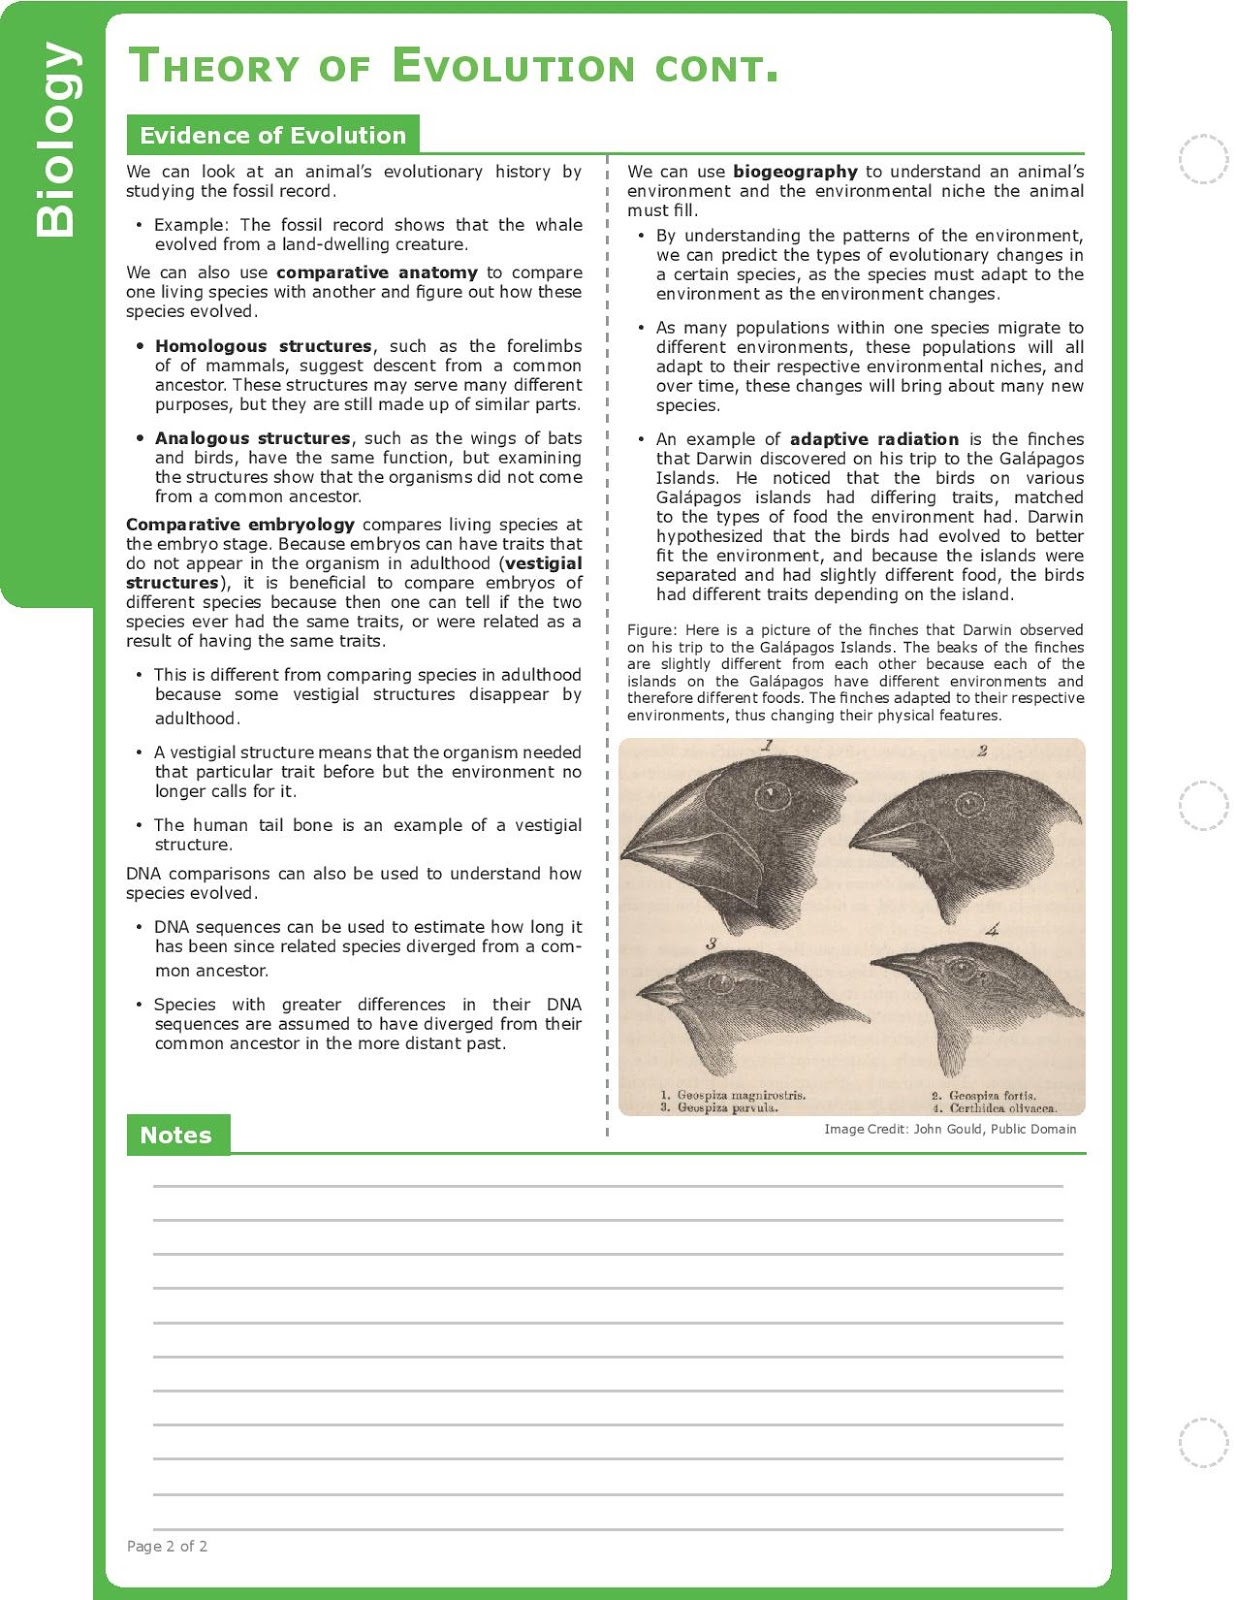 natural selection evolution study guide Honors biology content guide (this includes the major concepts for which students will be responsible in this unit additional content as studied in the unit under these major concepts may.